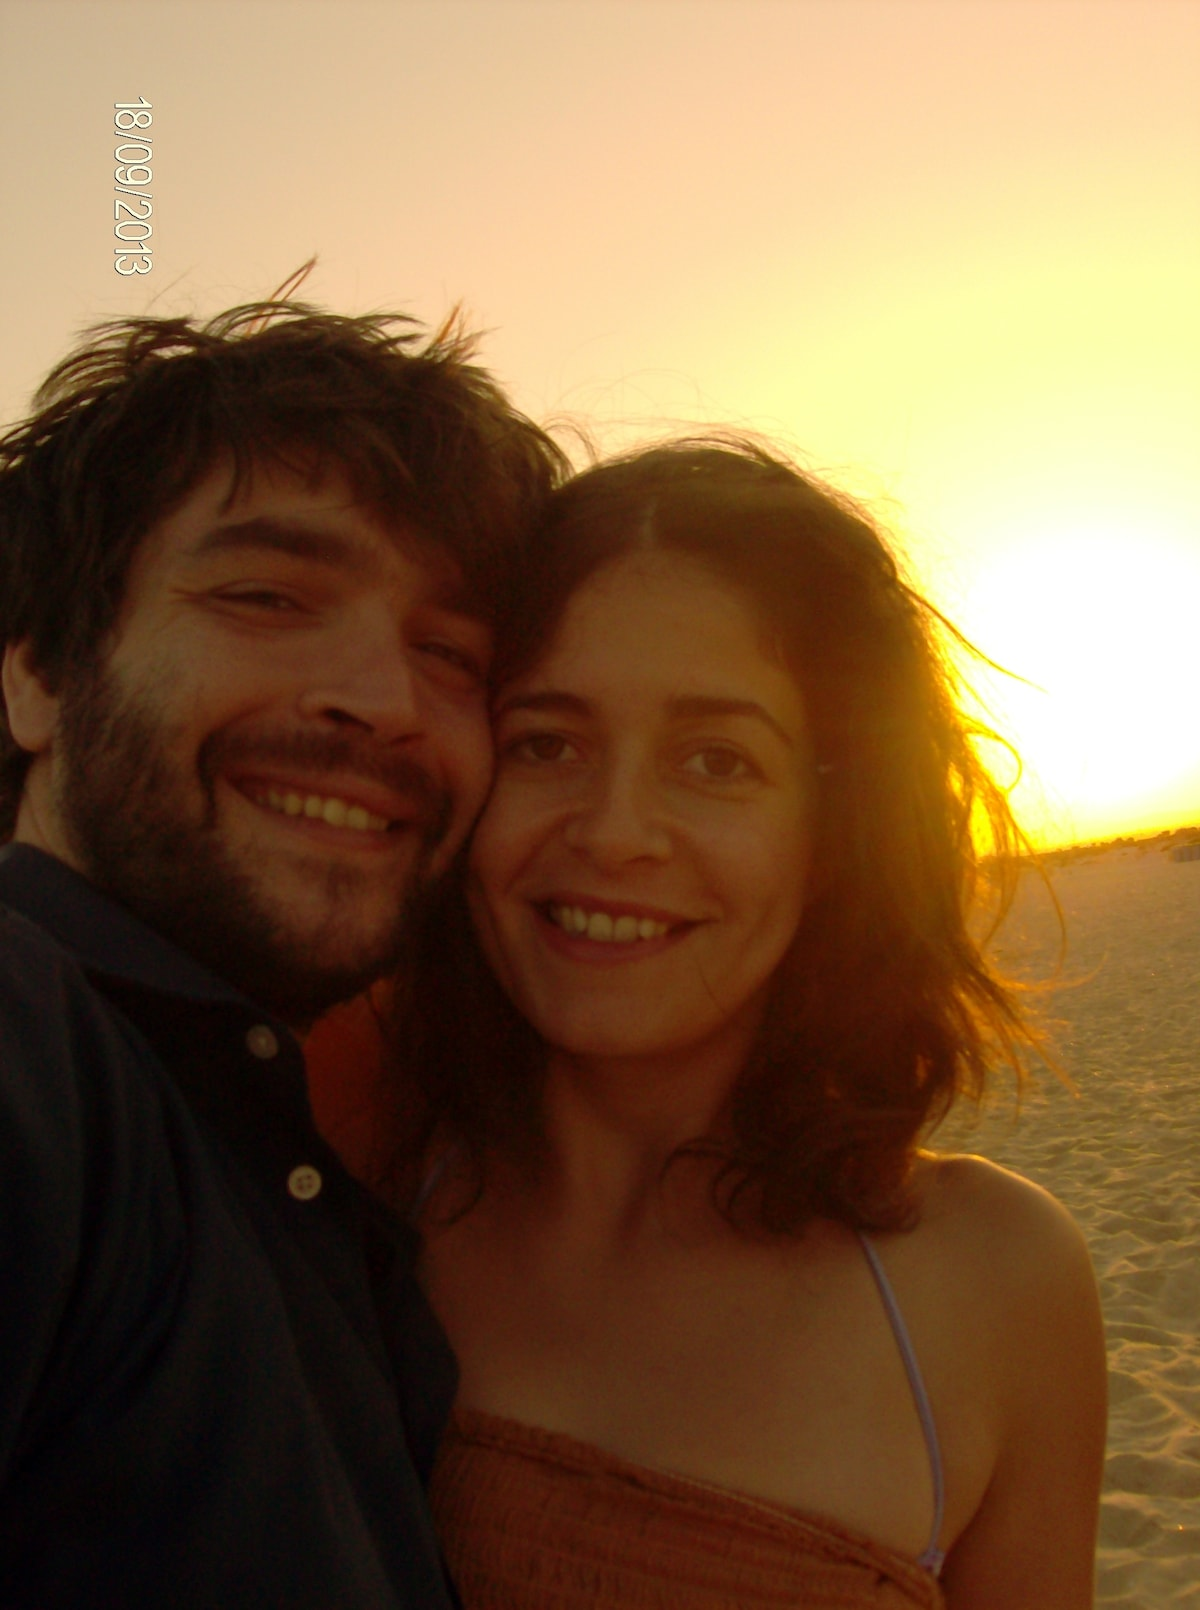 André & Inês from Lagoa